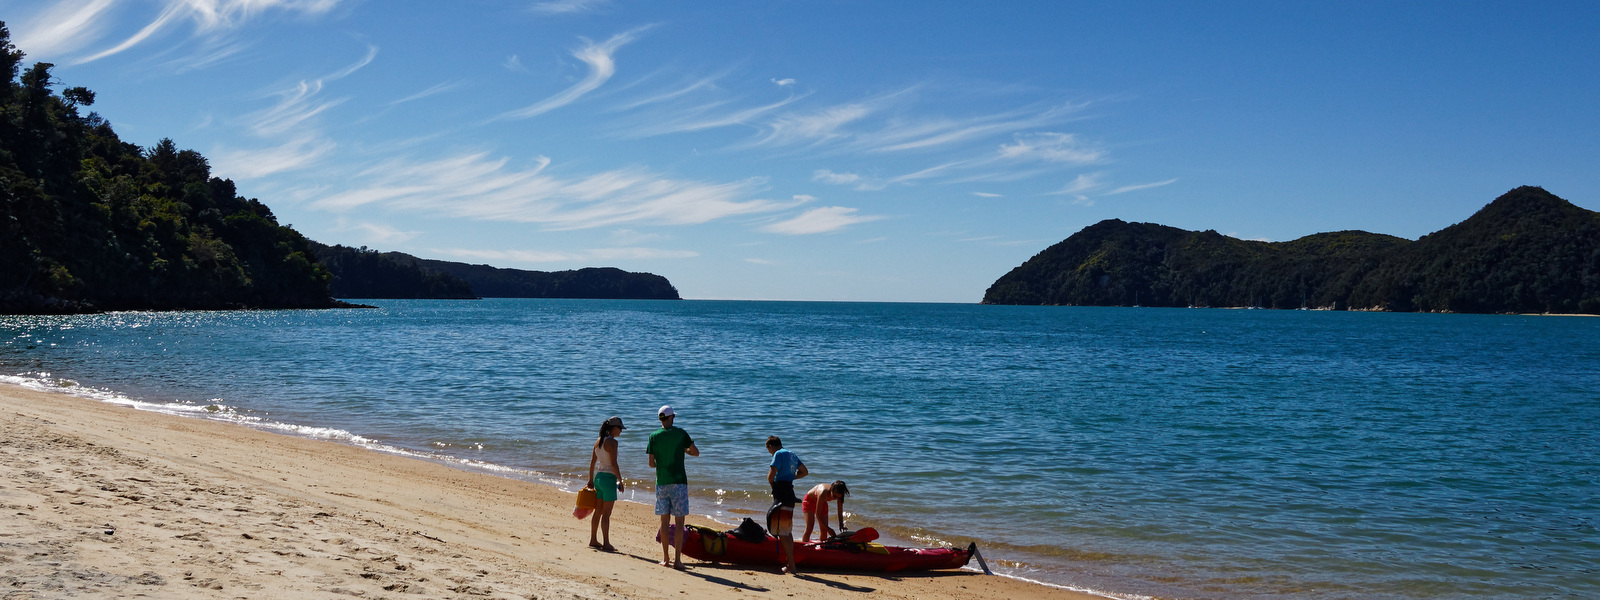 Explore the Abel Tasman by sea kayak, take a water taxi or scenic cruise and discover its  breath- taking wild beauty